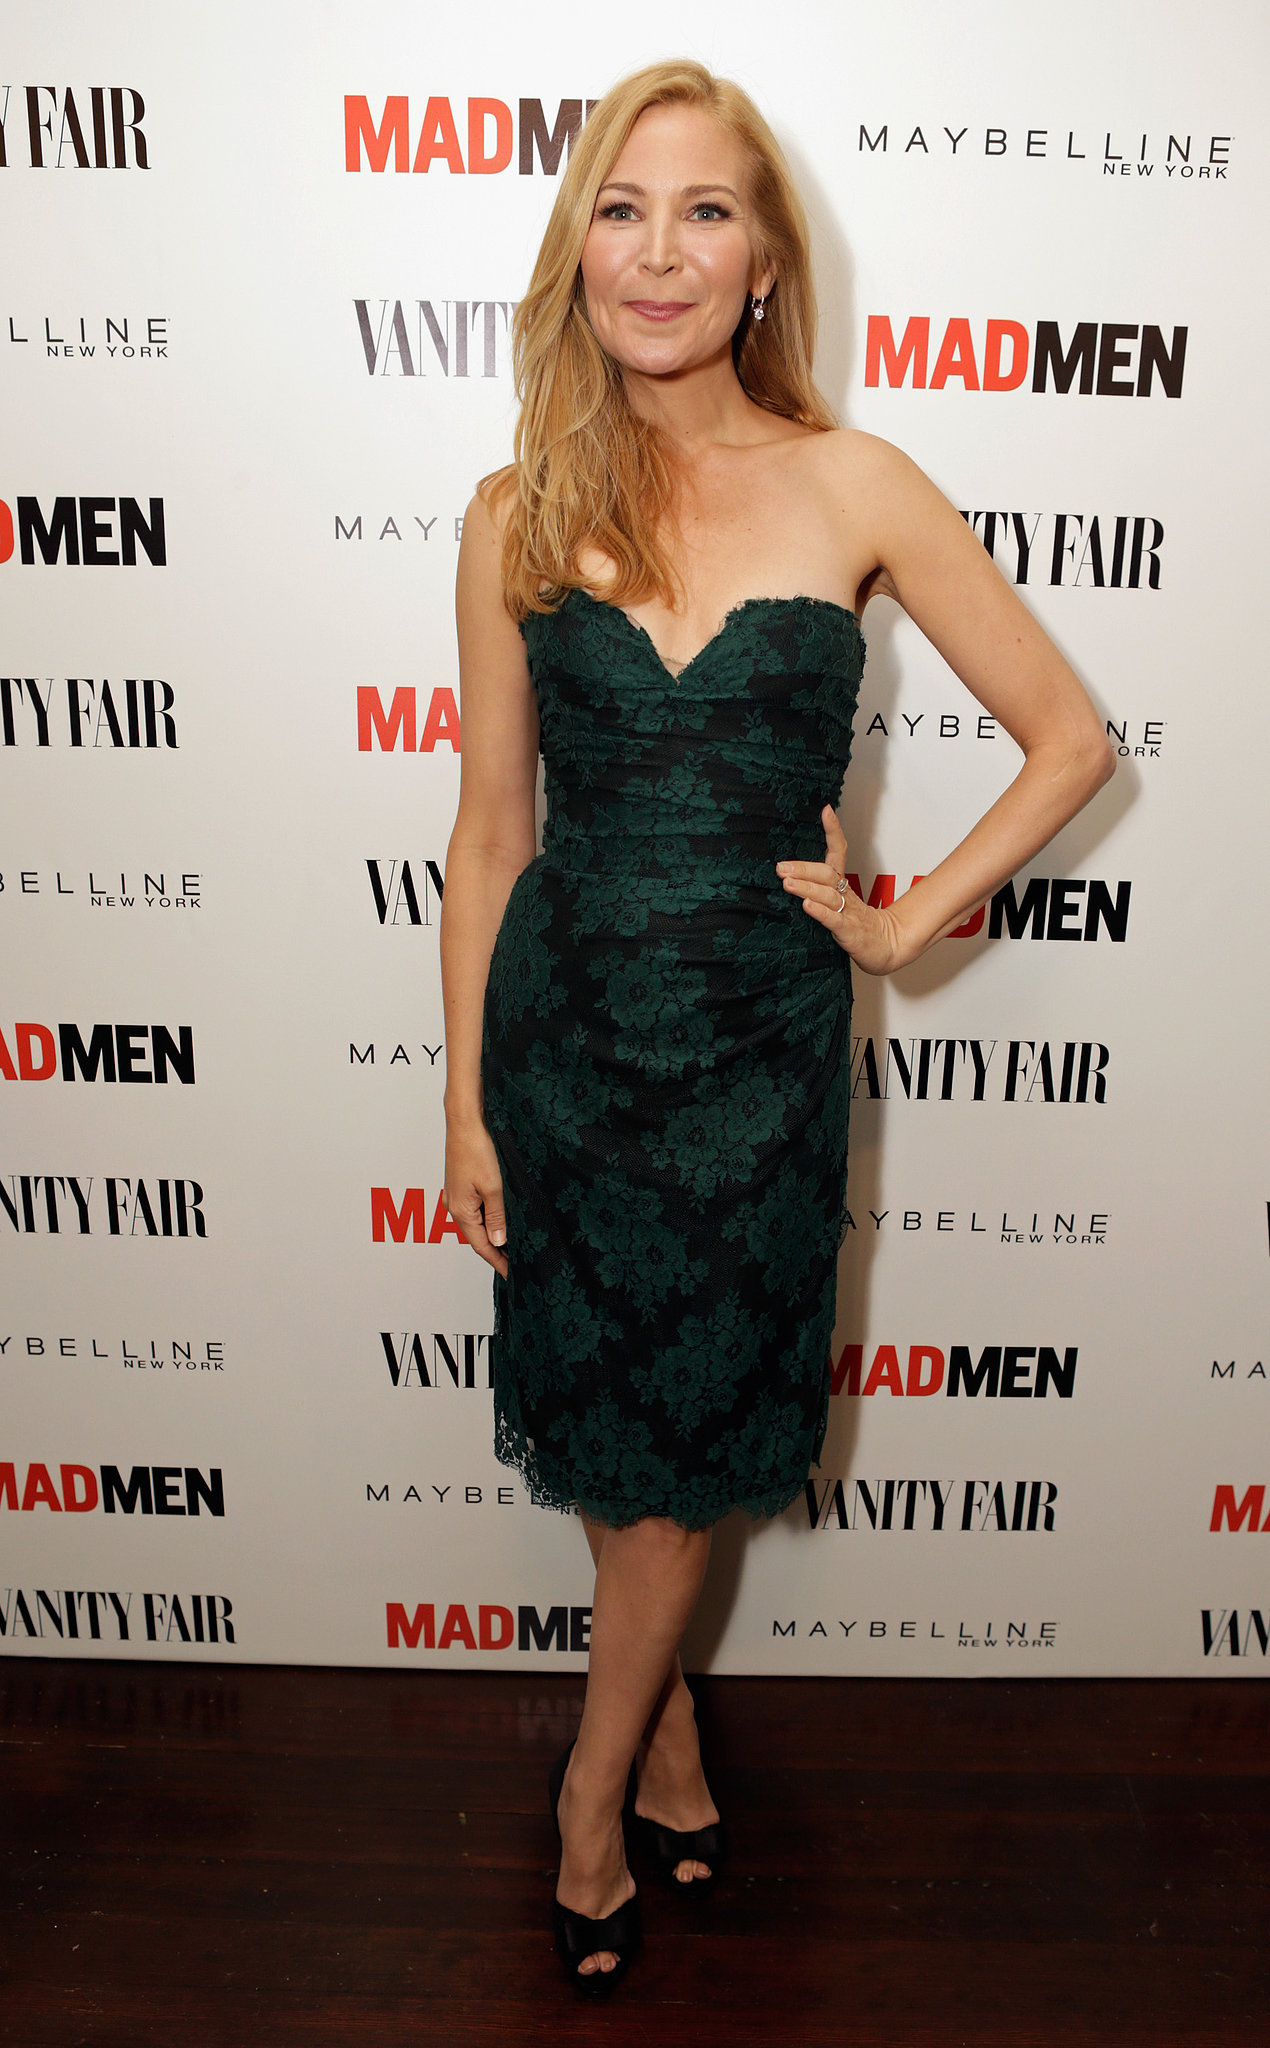 Jennifer Westfeldt chose a green strapless dress with a sweetheart neckline for the Vanity Fair and Maybelline pre-Emmys party in honor of Mad Men.